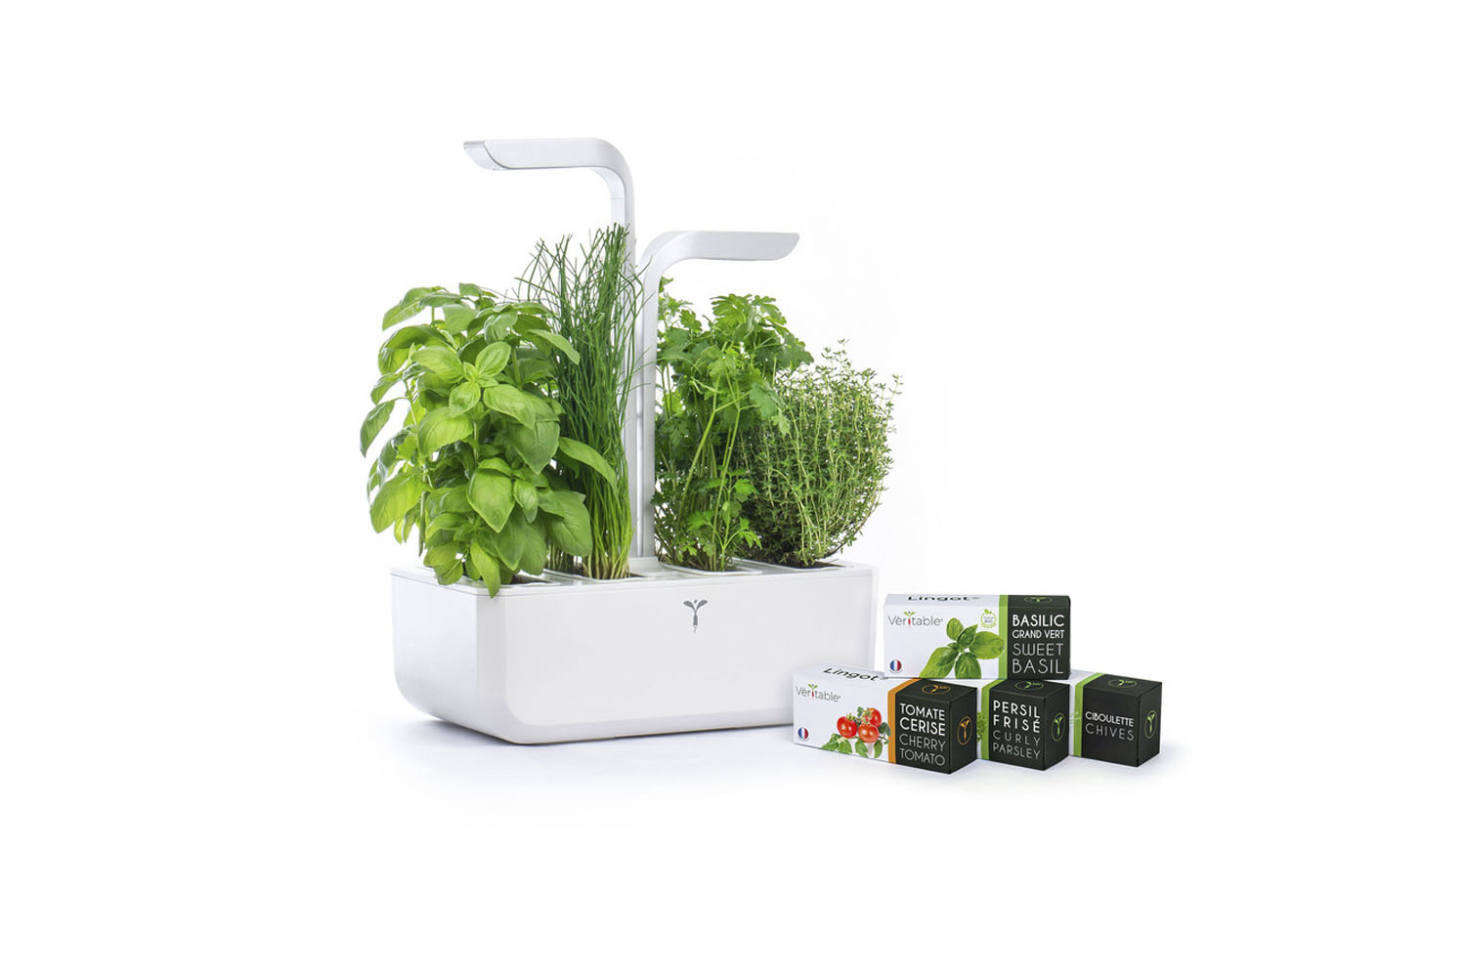 The Classic Veritable Garden is powered by an LED light and self-irrigates for up to three weeks (good for the itinerant gardener); $0 through Goop.